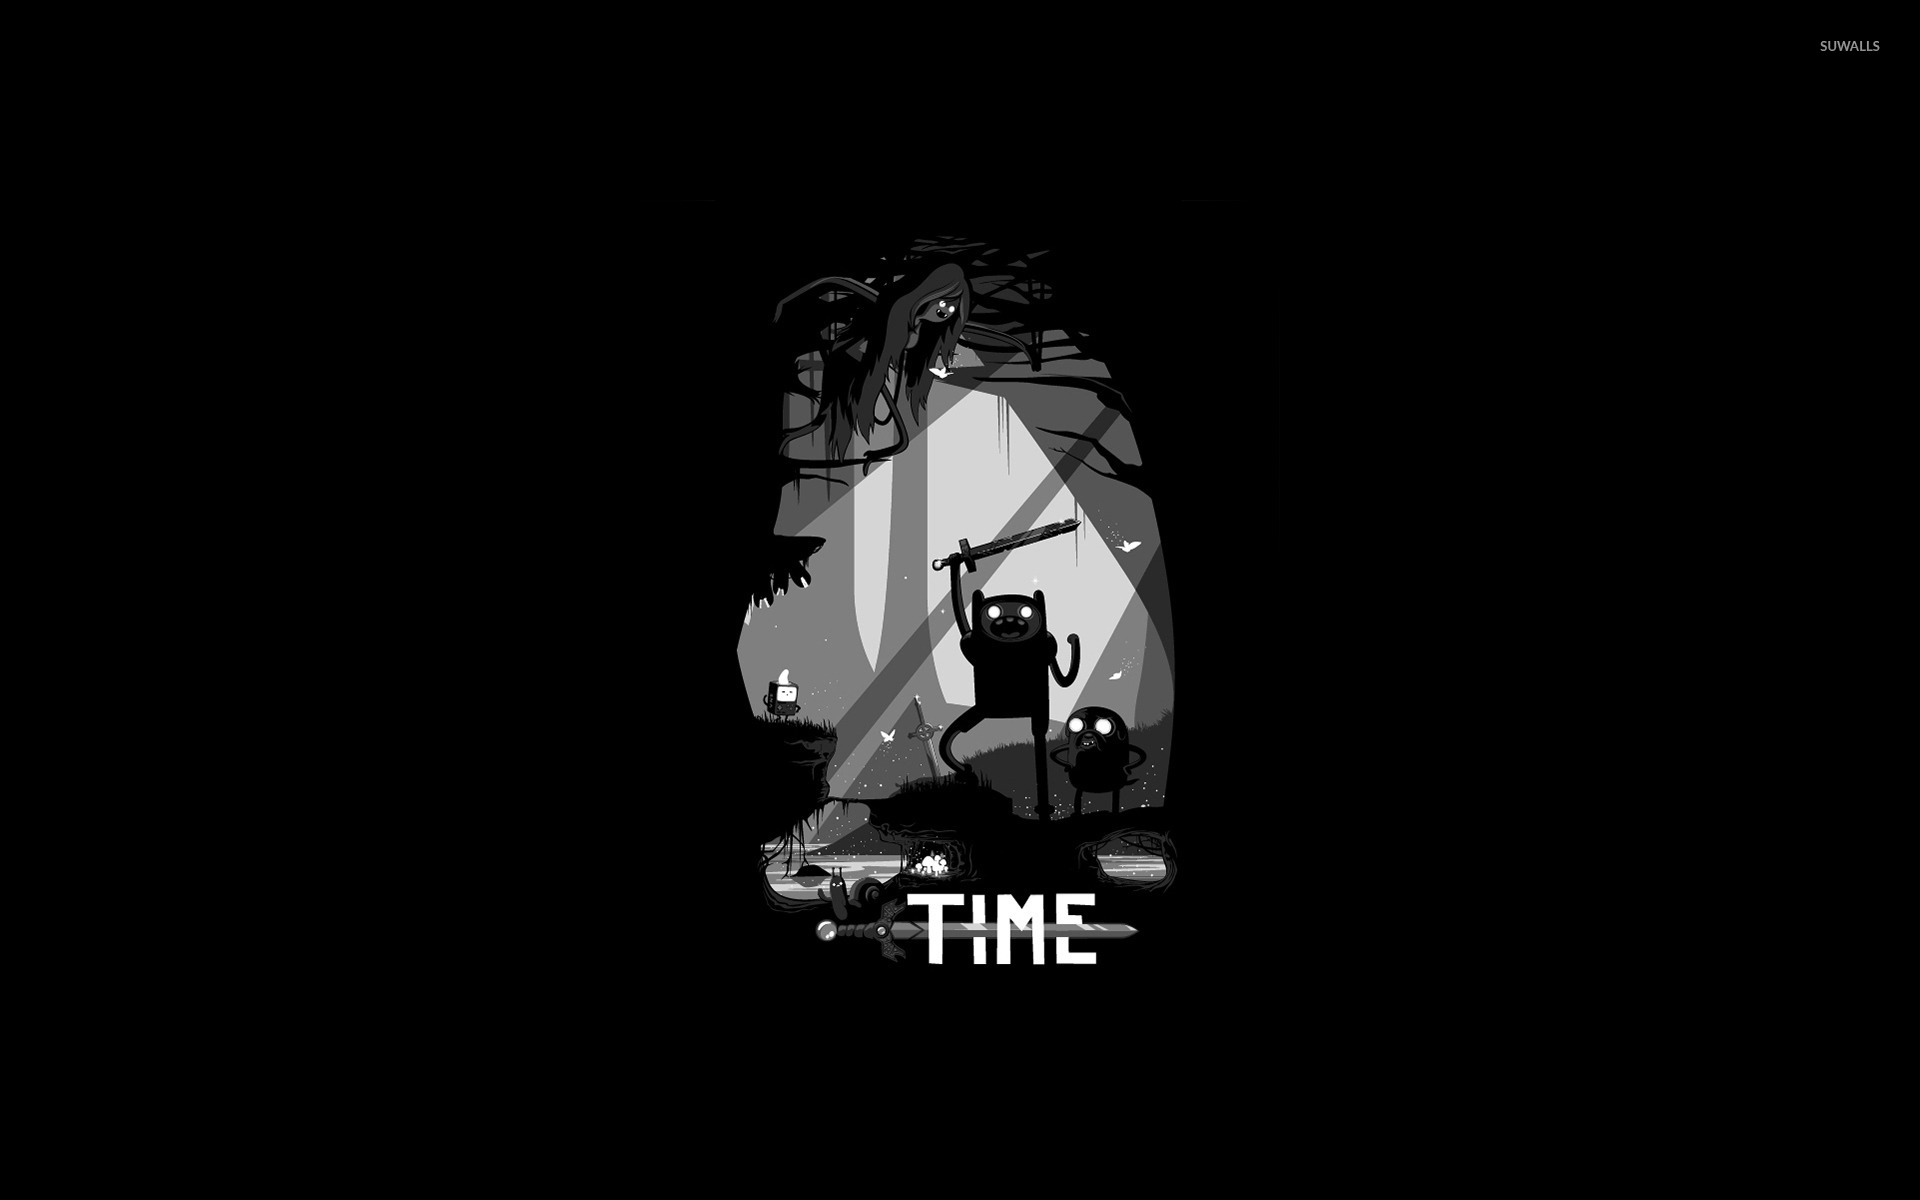 Zelda adventure time wallpaper cartoon wallpapers 16215 zelda adventure time wallpaper thecheapjerseys Choice Image